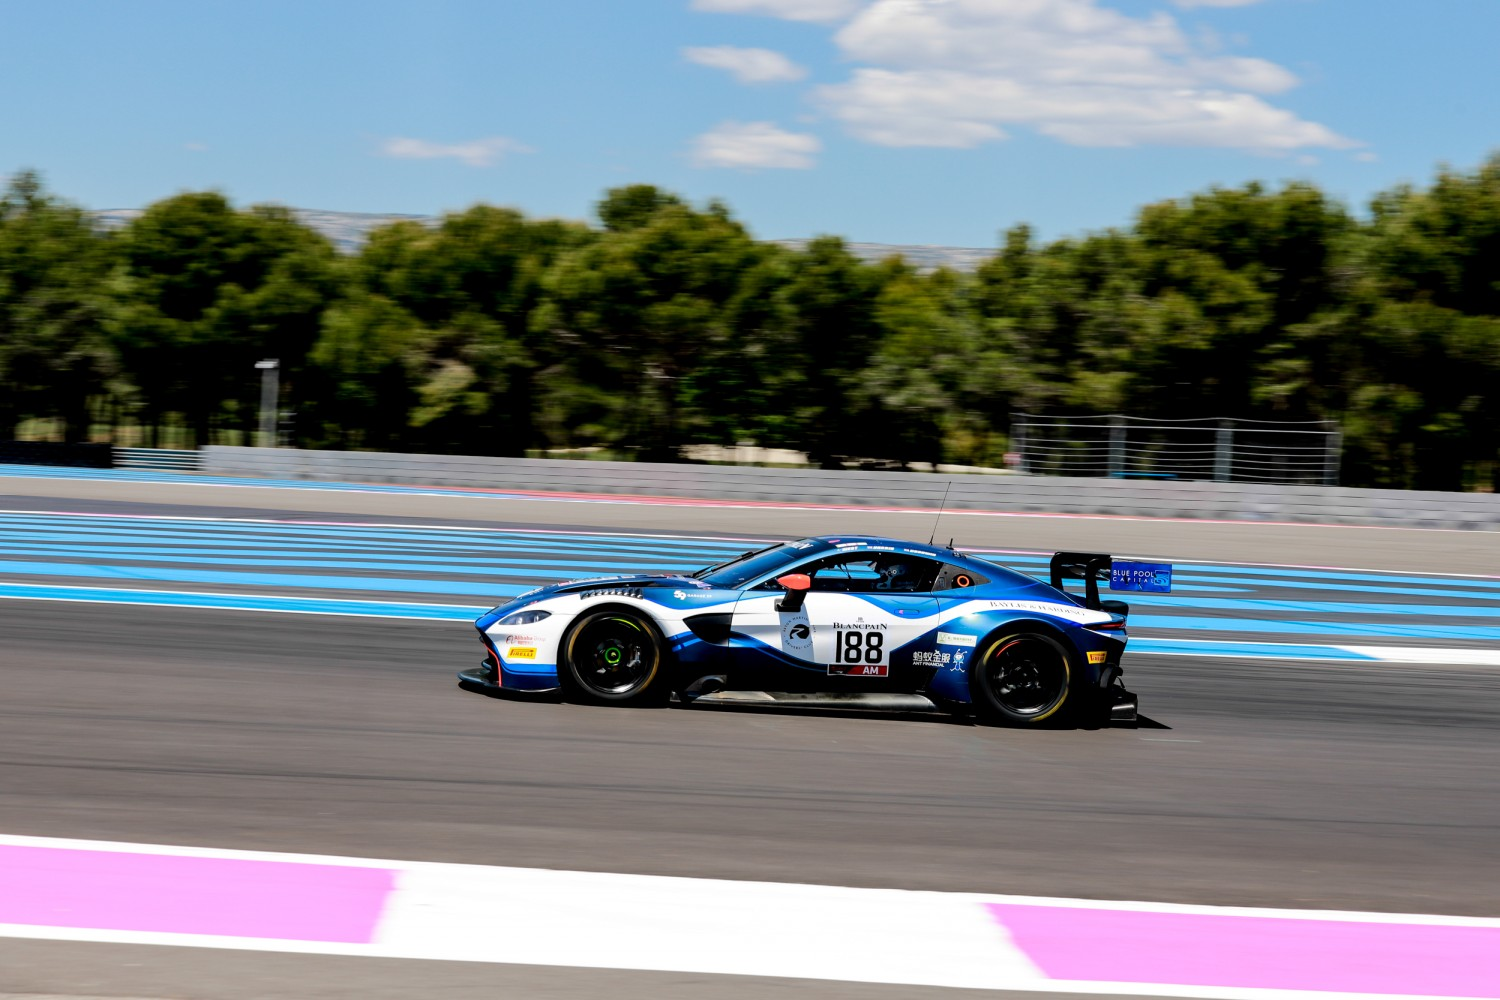 #188 Garage 59 GBR Aston Martin Vantage AMR GT3 Alexander West SWE Chris Harris GBR Chris Goodwin GBR AM Cup, Free Practice  | SRO / Patrick Hecq Photography